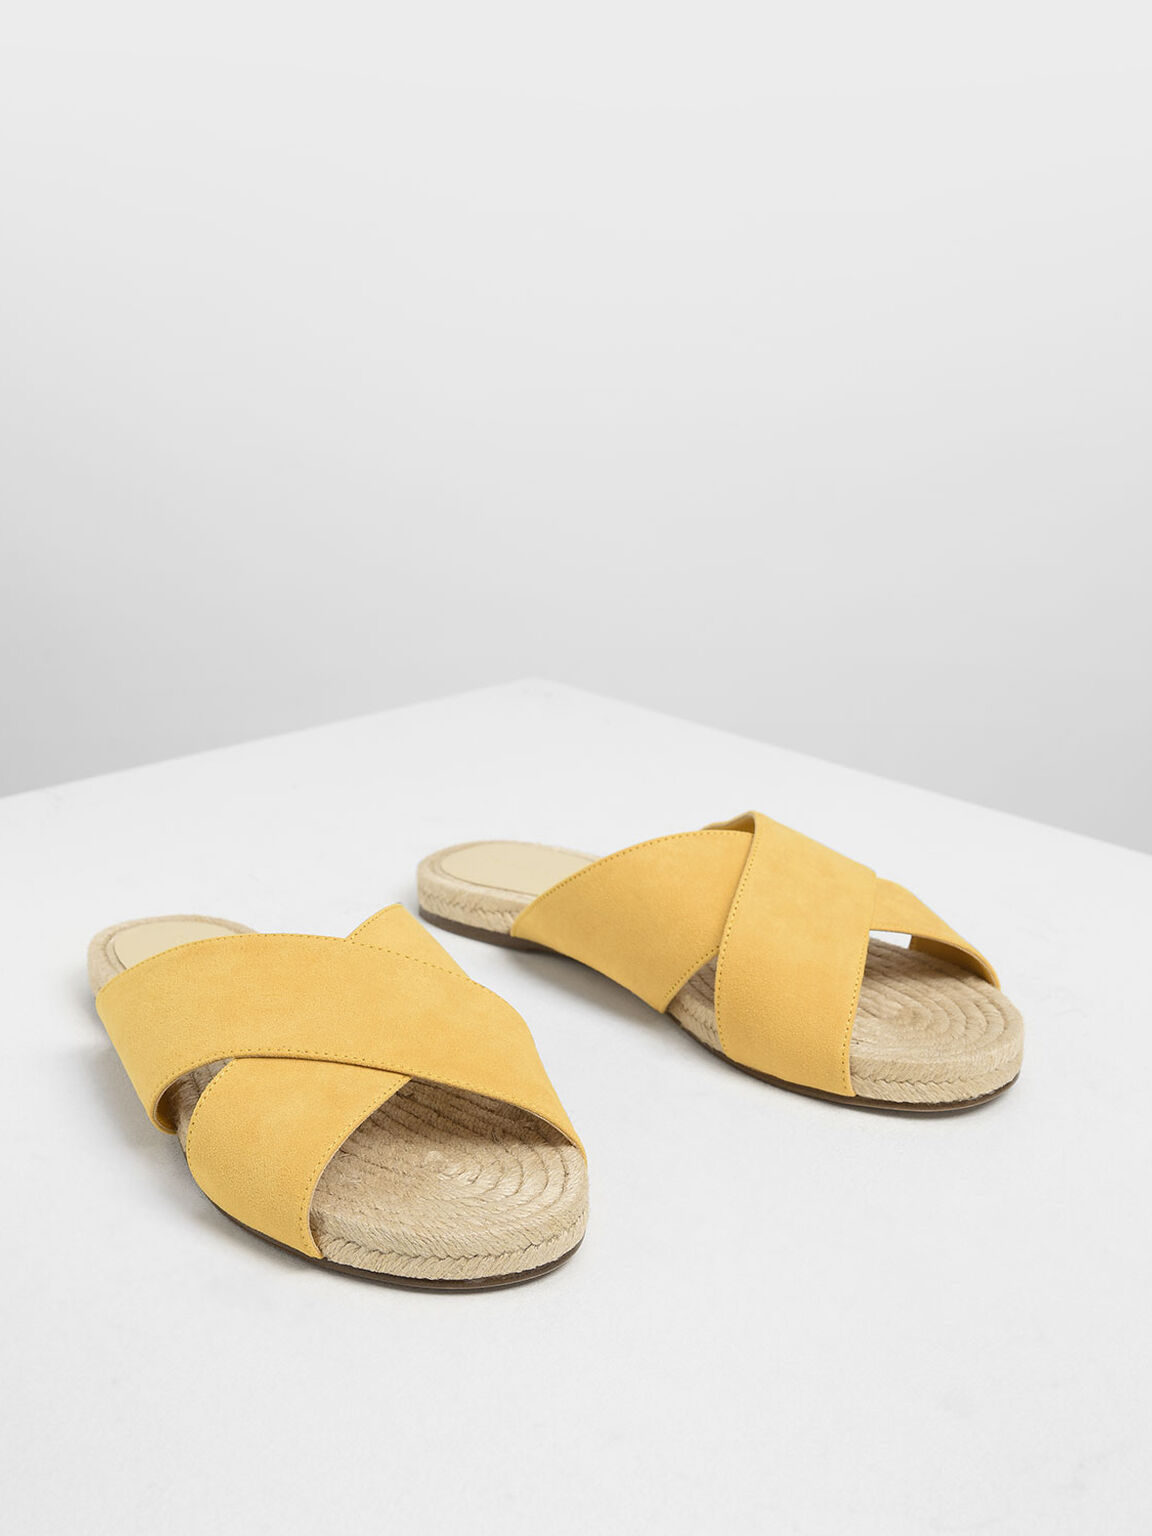 Criss Cross Slide Sandals, Yellow, hi-res